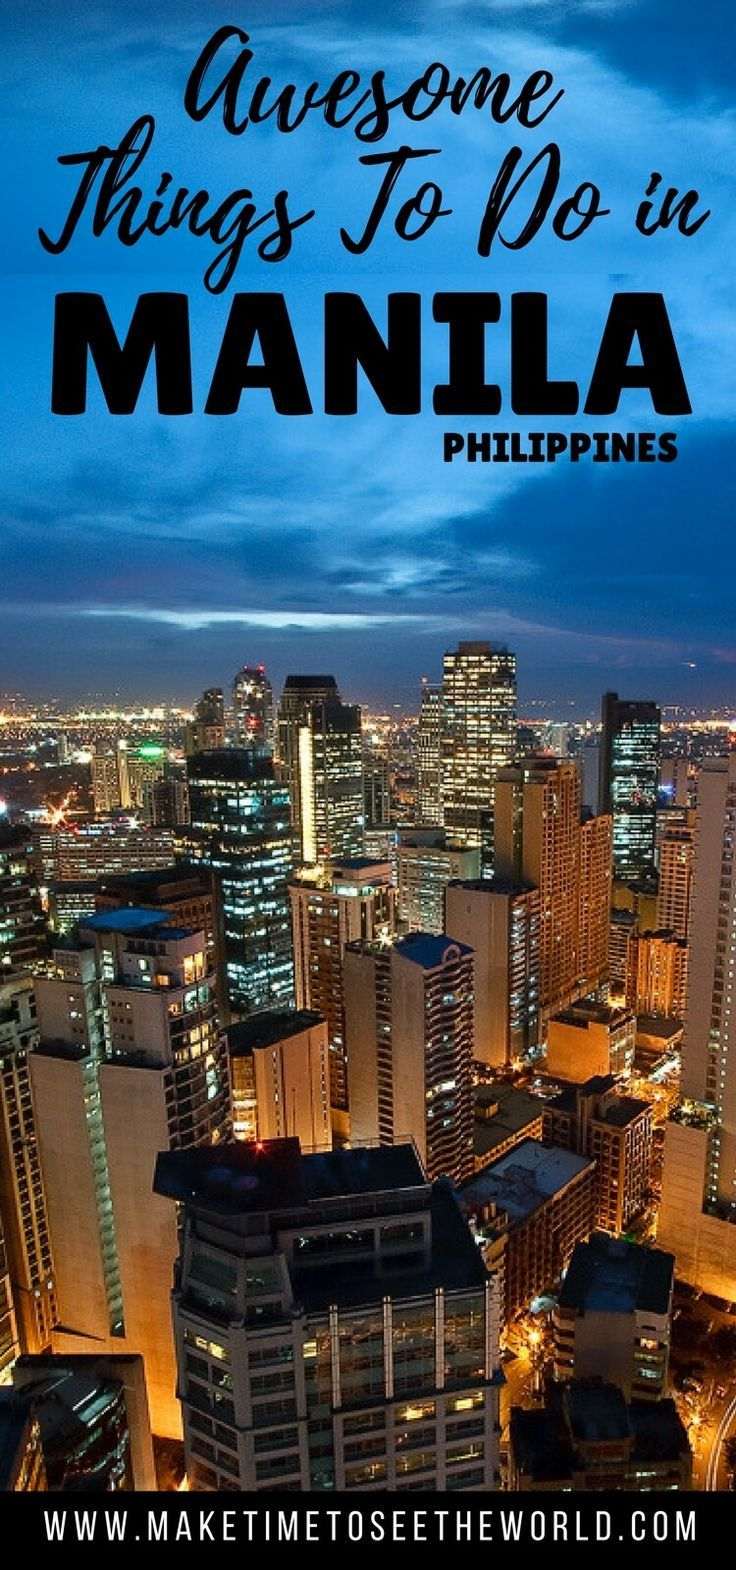 dating place in manila philippines Manila, philippines – there are always reasons for couples to celebrate milestones, but they can also appreciate even the small, tender moments (read: 7 romantic ph travel destinations for your dating milestones) often, the best way to spend time in the company of a special someone is over good.